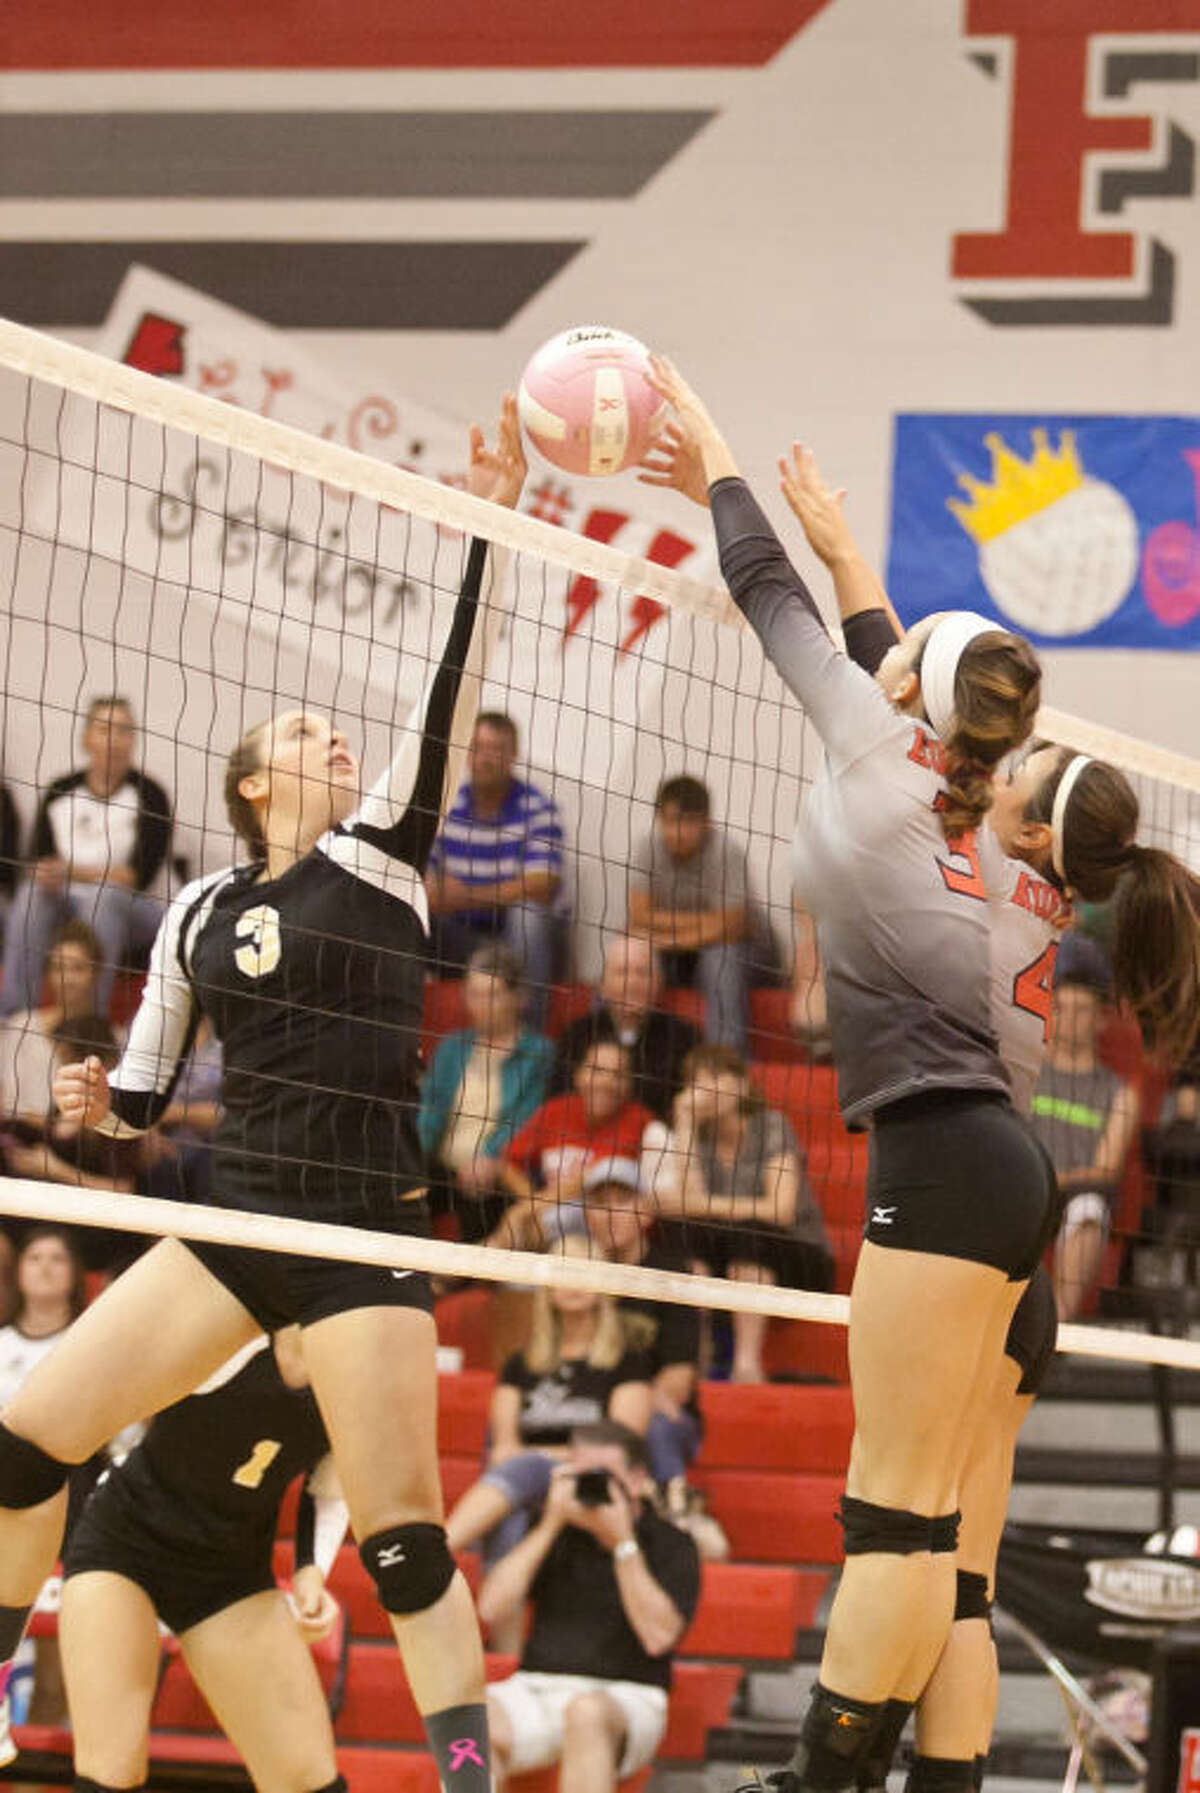 Liberty's Kaitlyn Slack (3), gets block by Huffman's Shelby Russell (3) and Bailey Sousa (4) in the first set of their match on Oct. 29, 2013. (Photo by AMANDA J. CAIN/ The Observer)